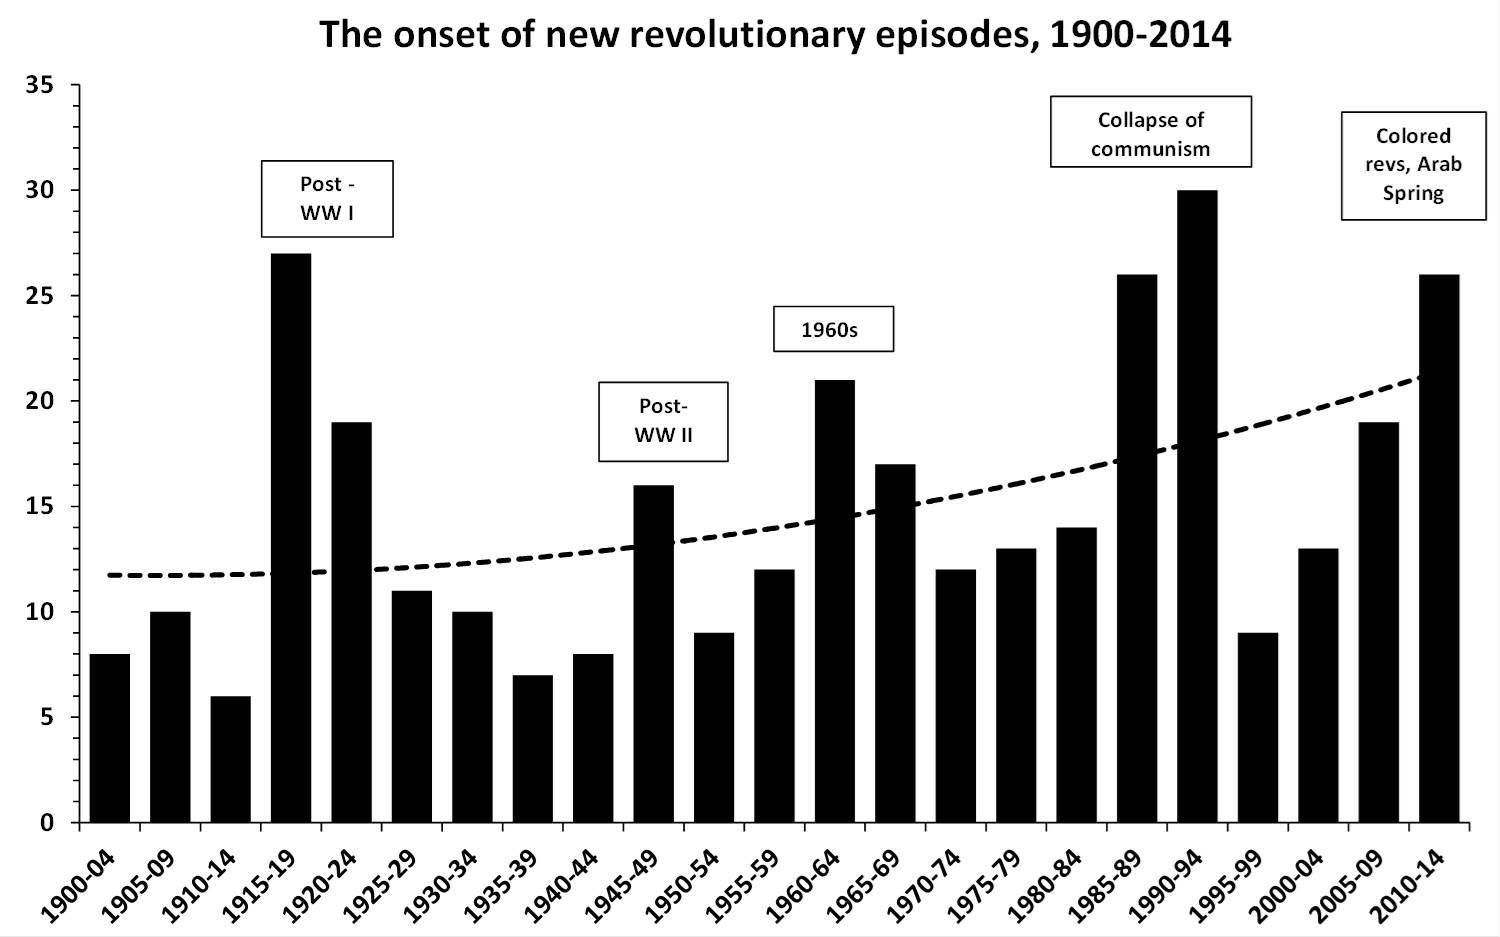 Frequency of revolution